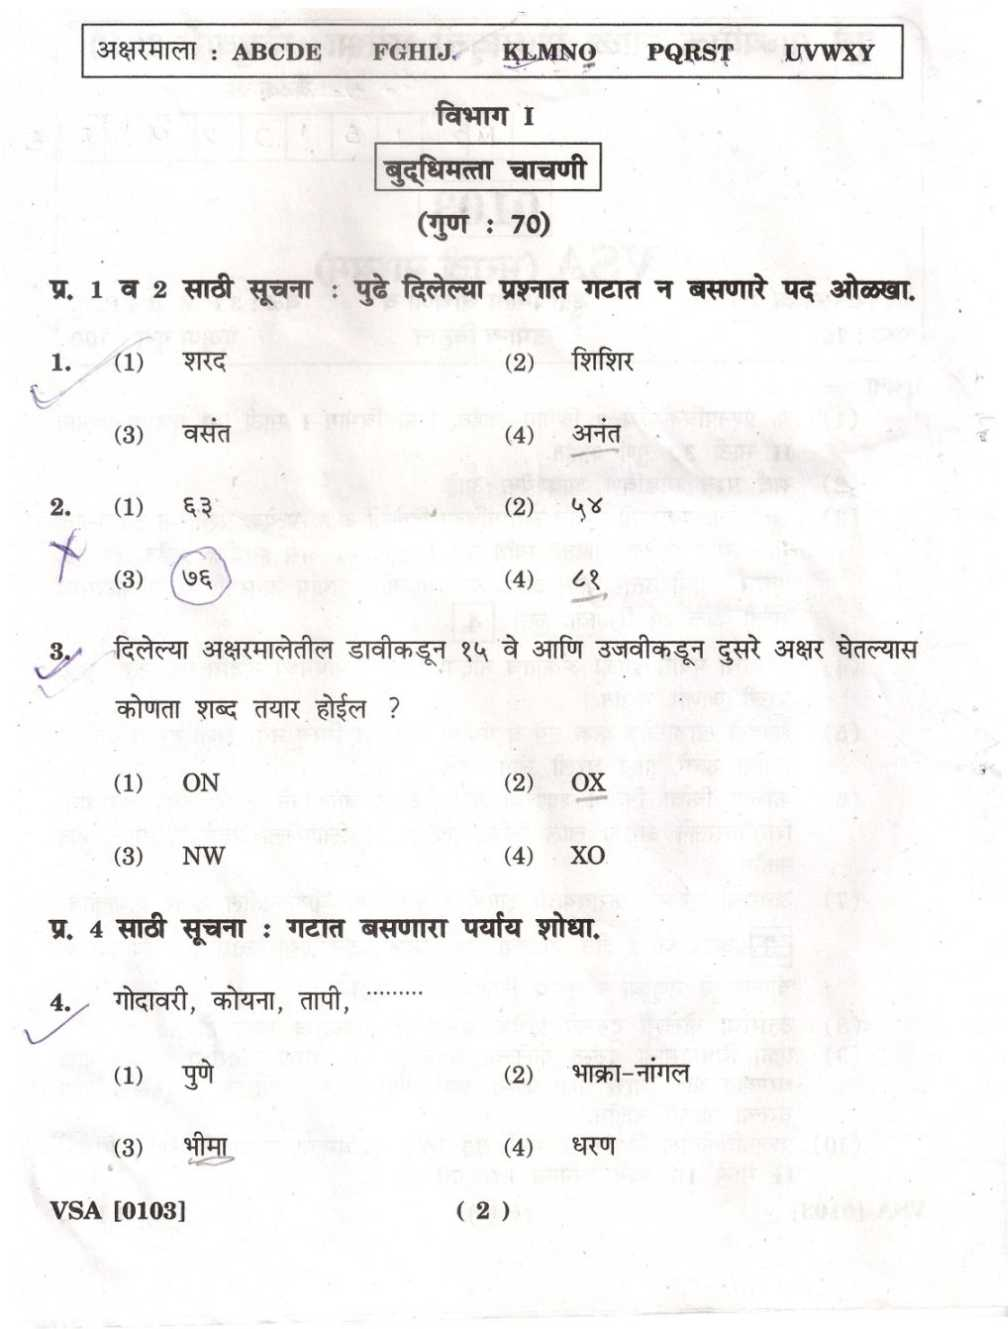 Previous question papers of 4th Standard Scholarship exam (English